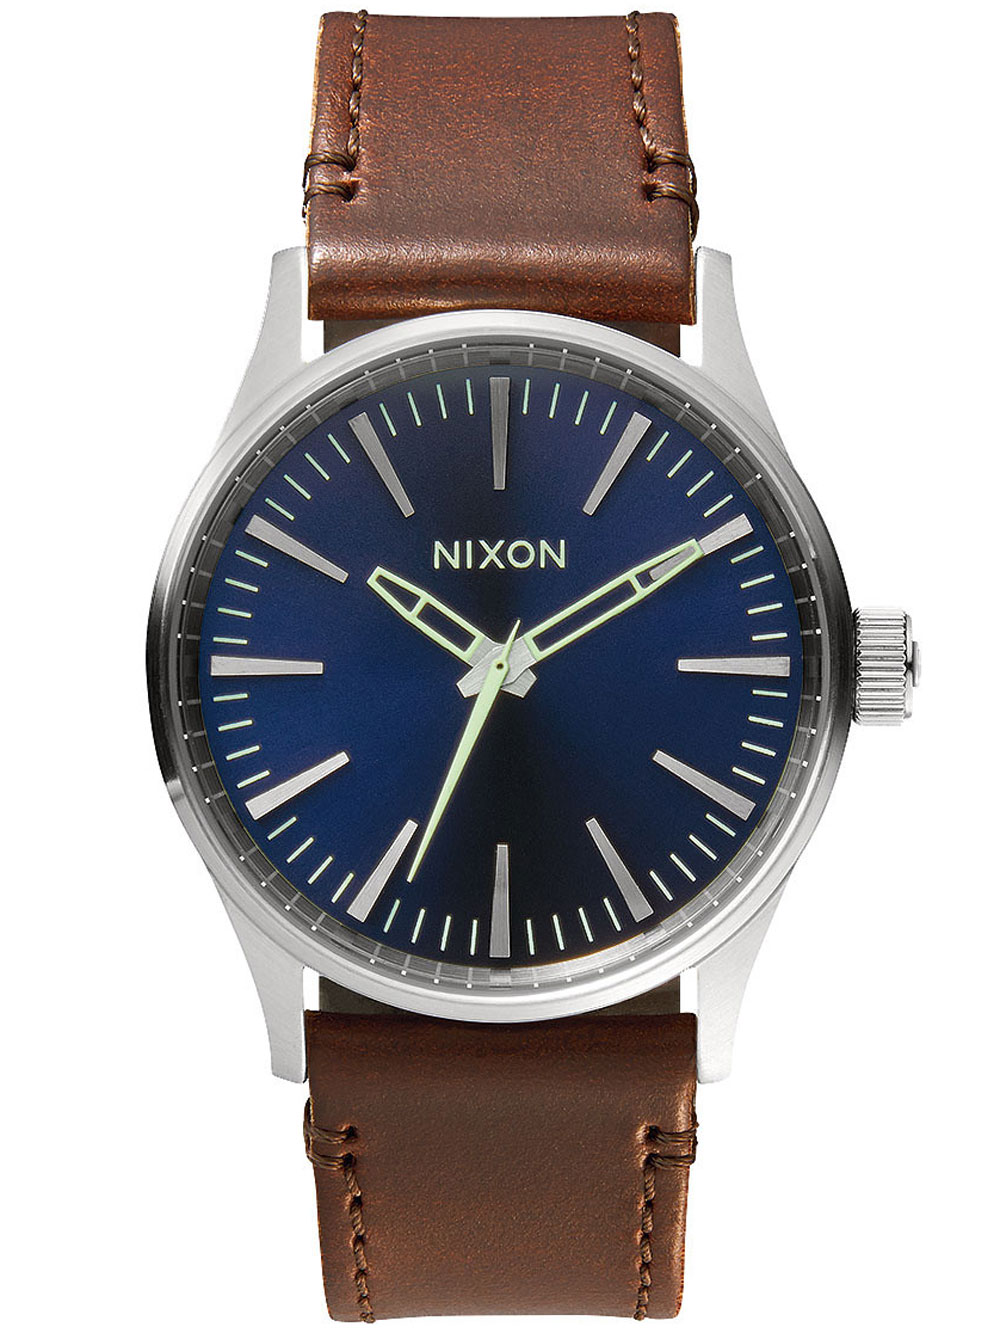 NIXON A377-1524 Sentry 38 Leather Blue Brown 38mm 10ATM